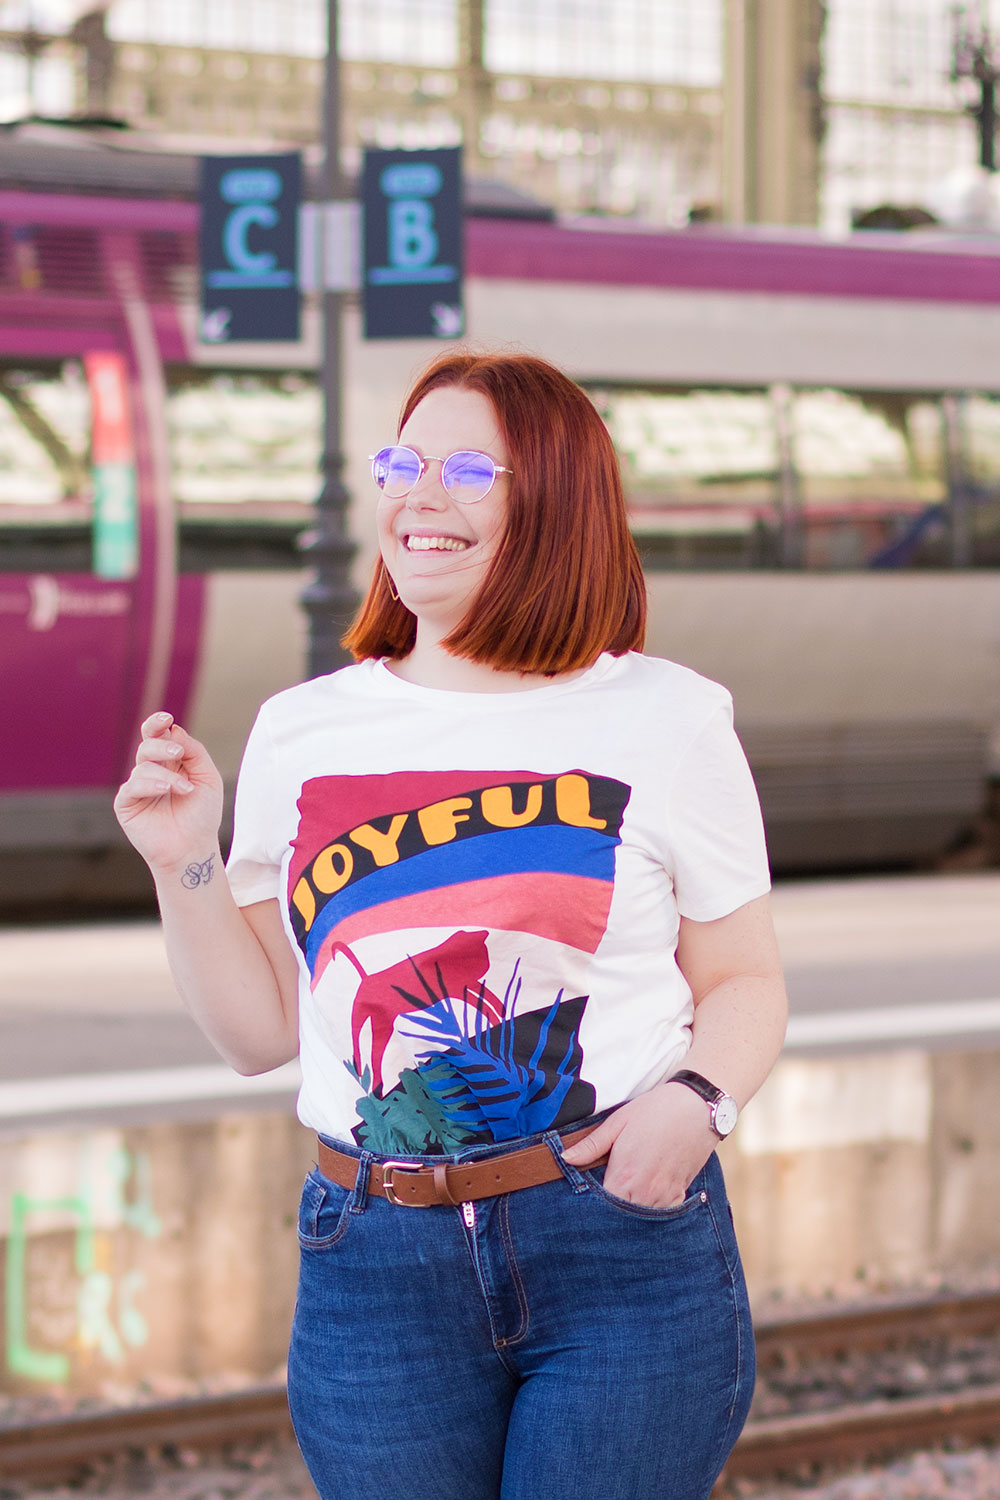 Devant le train rose avec le sourire en t-shirt Joyful